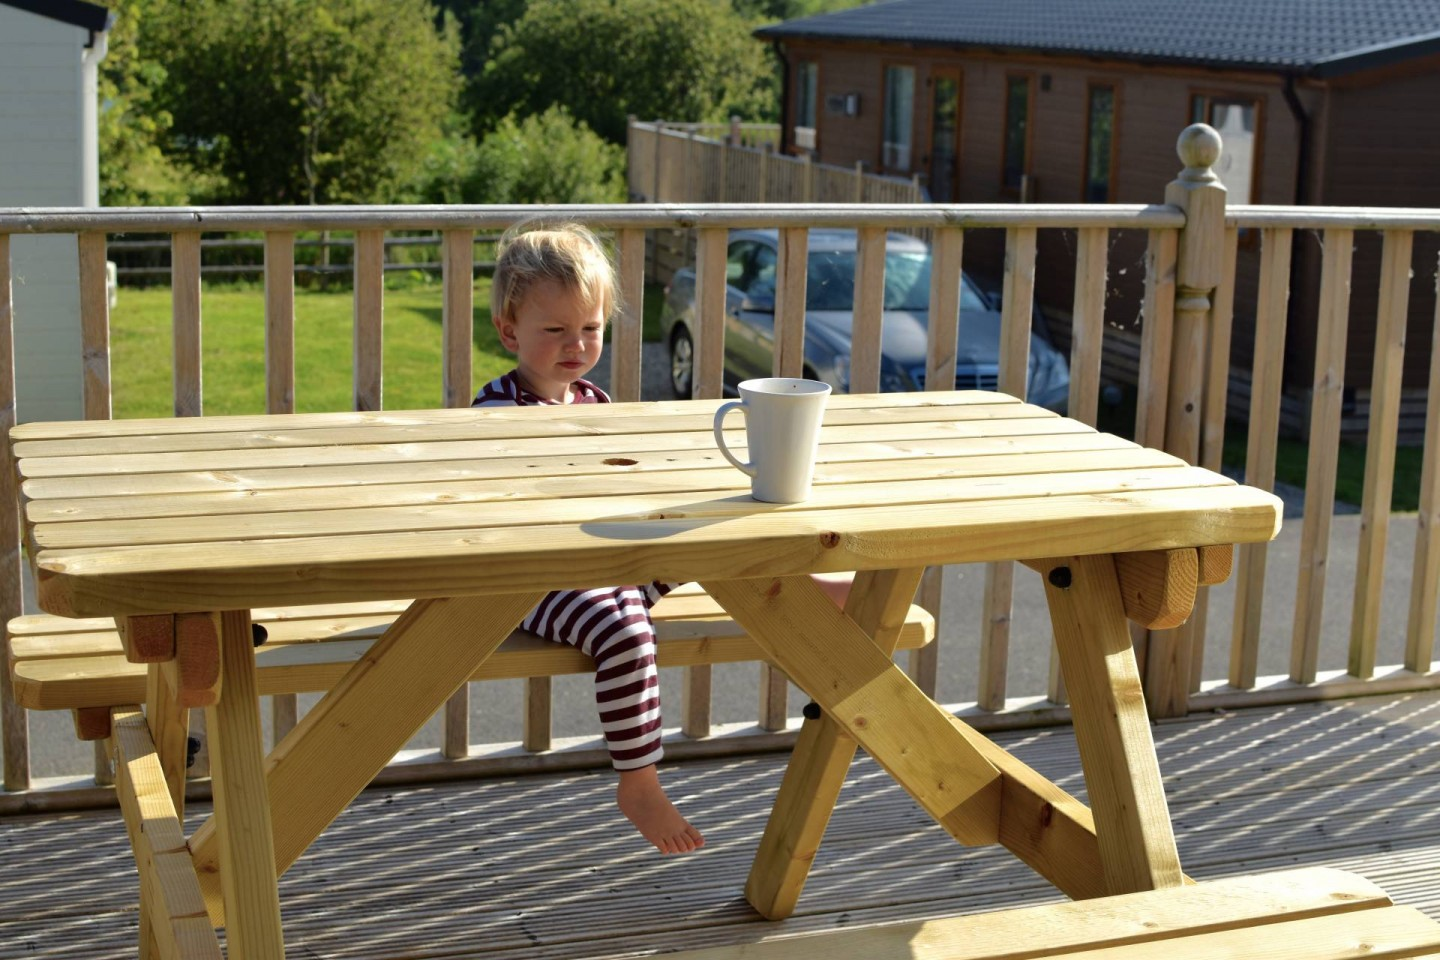 breakfast on the decking at Trevella Park caravan and campsite in Cornwall